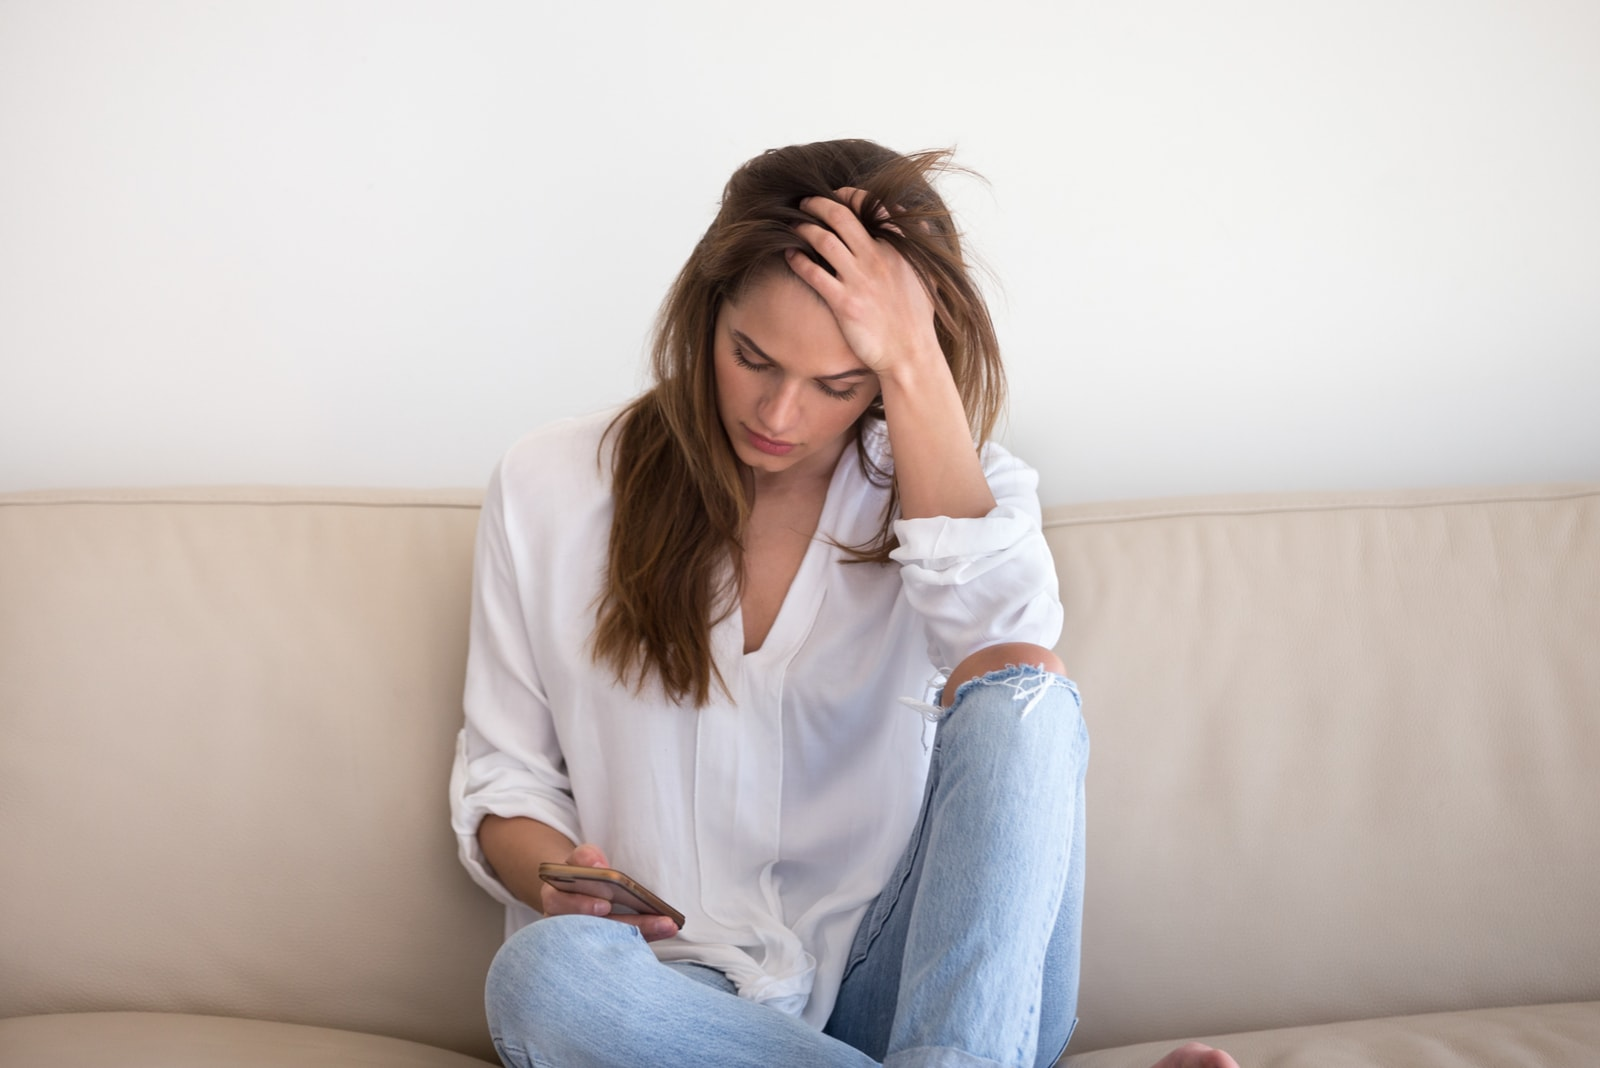 worried woman texting on the mobile phone